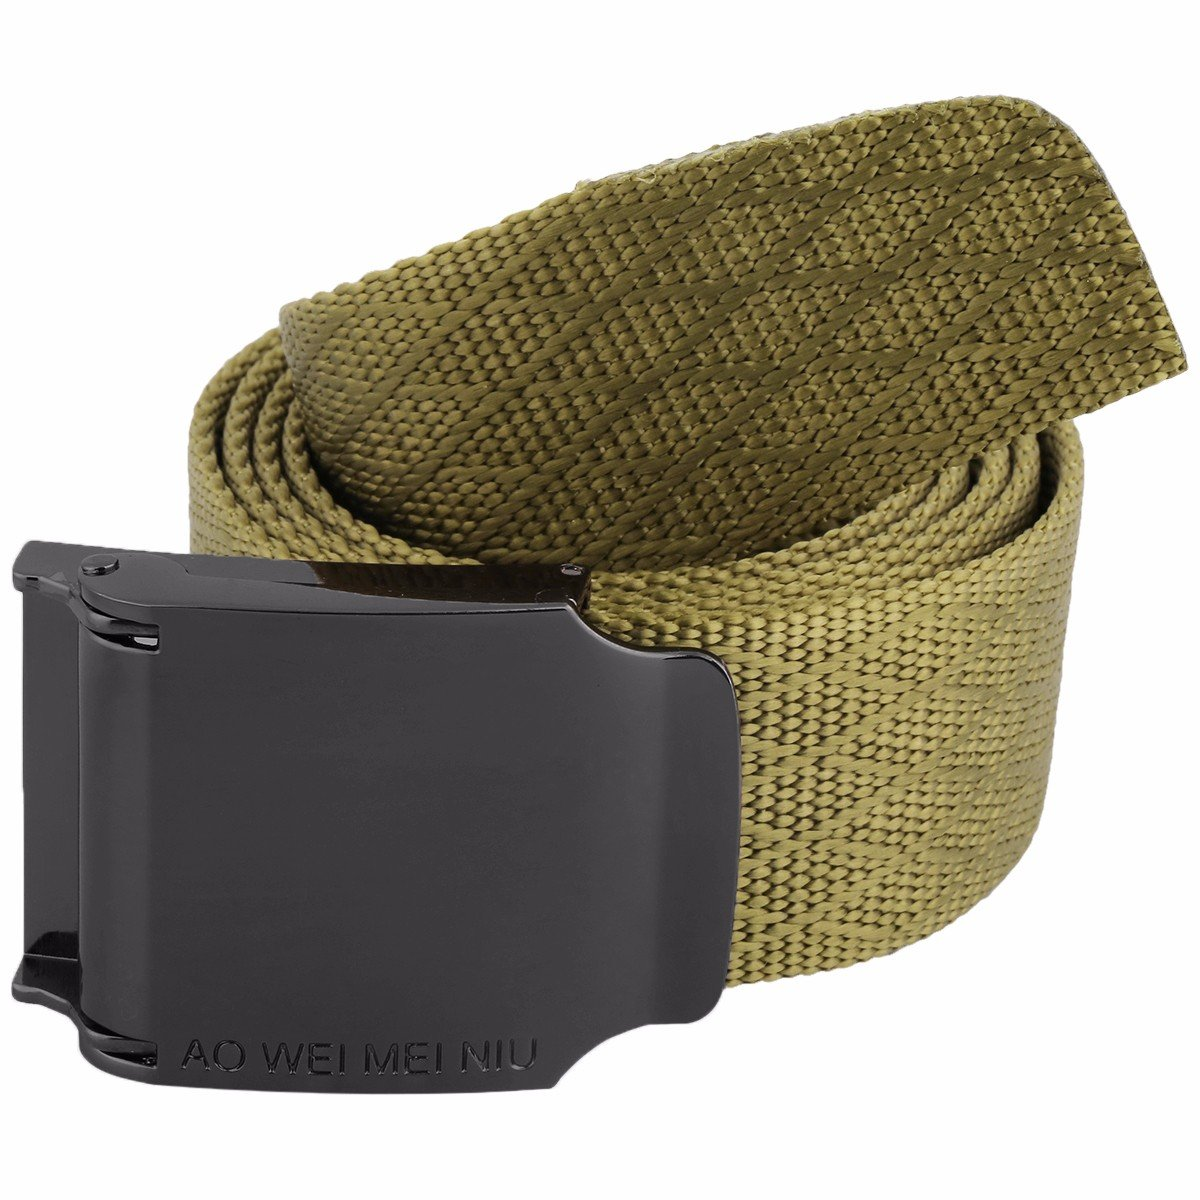 squaregarden Tactical Belt, Military Style Nylon Webbing Belts with Metal Buckle